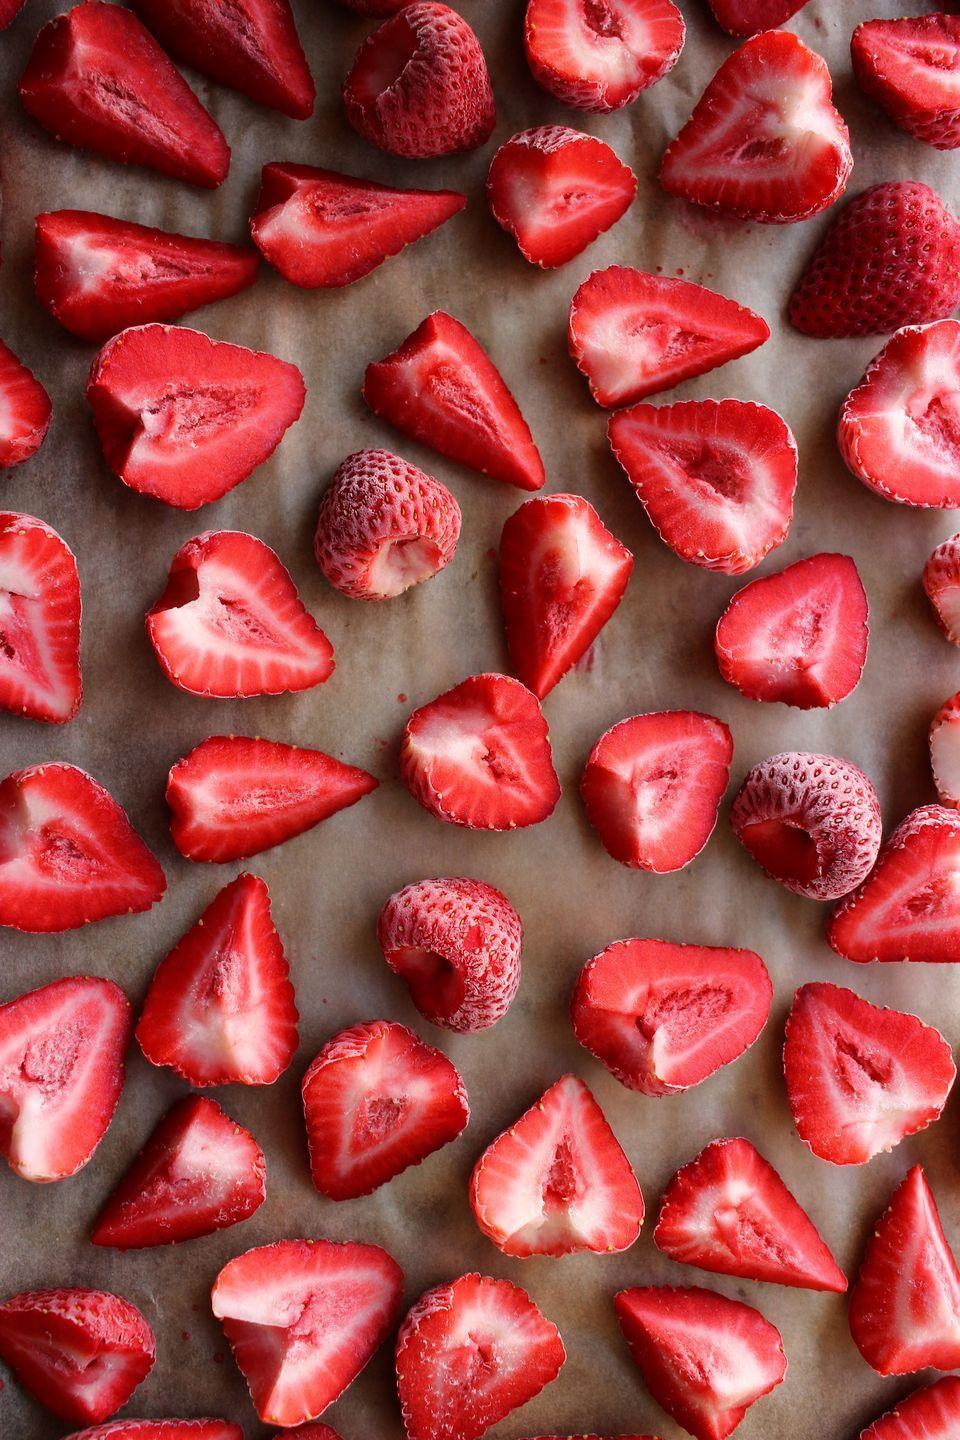 """<p>Properly frozen strawberries are an excellent start to any dessert.</p><p>Get the recipe from <a href=""""https://www.delish.com/cooking/recipe-ideas/a32435072/how-to-freeze-strawberries/"""" rel=""""nofollow noopener"""" target=""""_blank"""" data-ylk=""""slk:Delish"""" class=""""link rapid-noclick-resp"""">Delish</a>.<br></p>"""